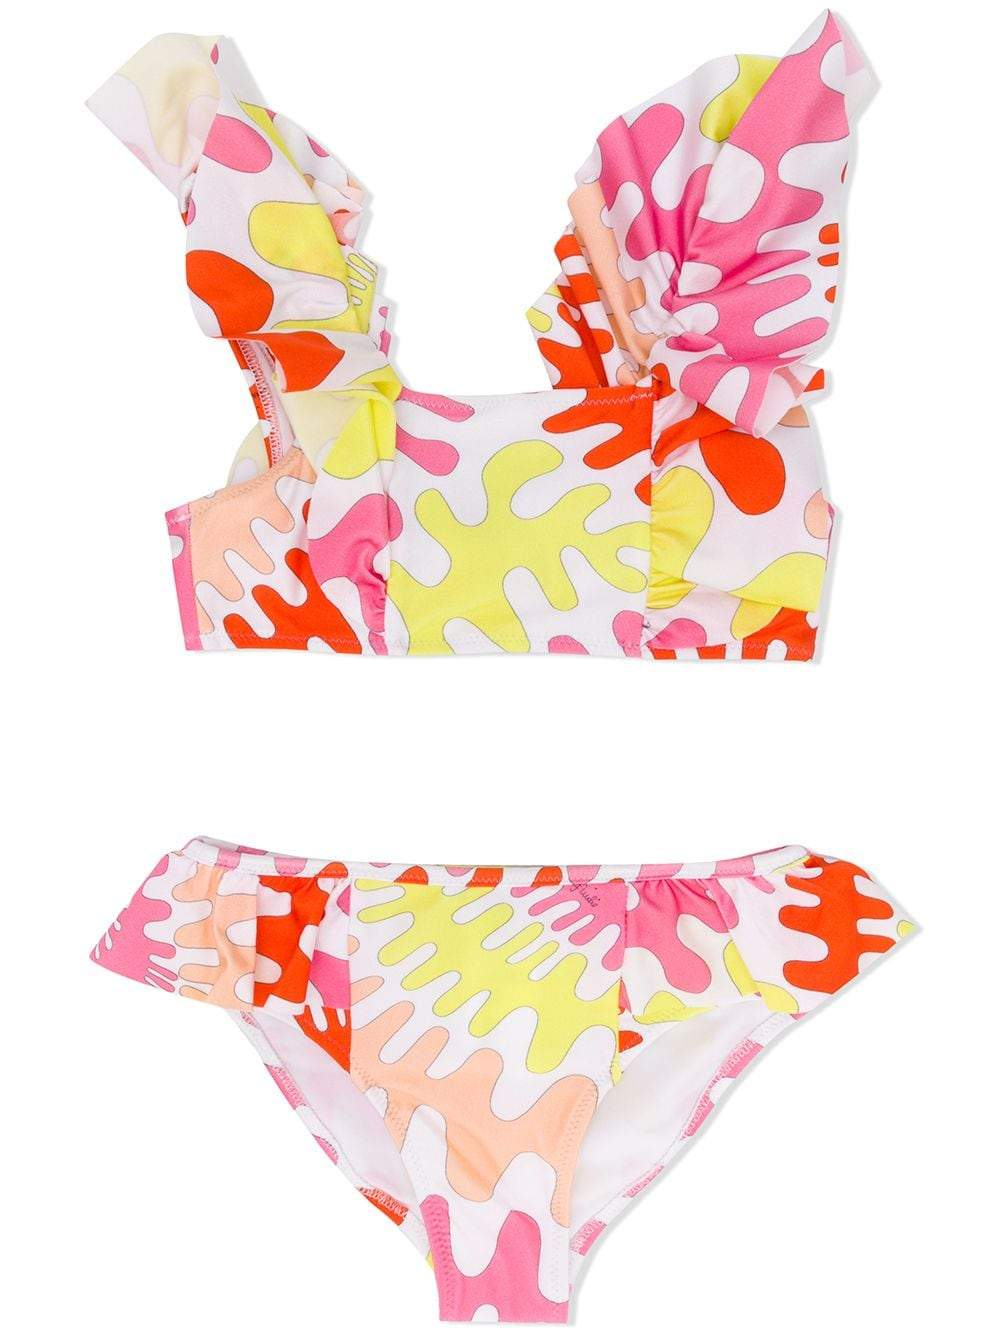 EMILIO PUCCI KIDS abstract print bikini set pink - Maison De Fashion